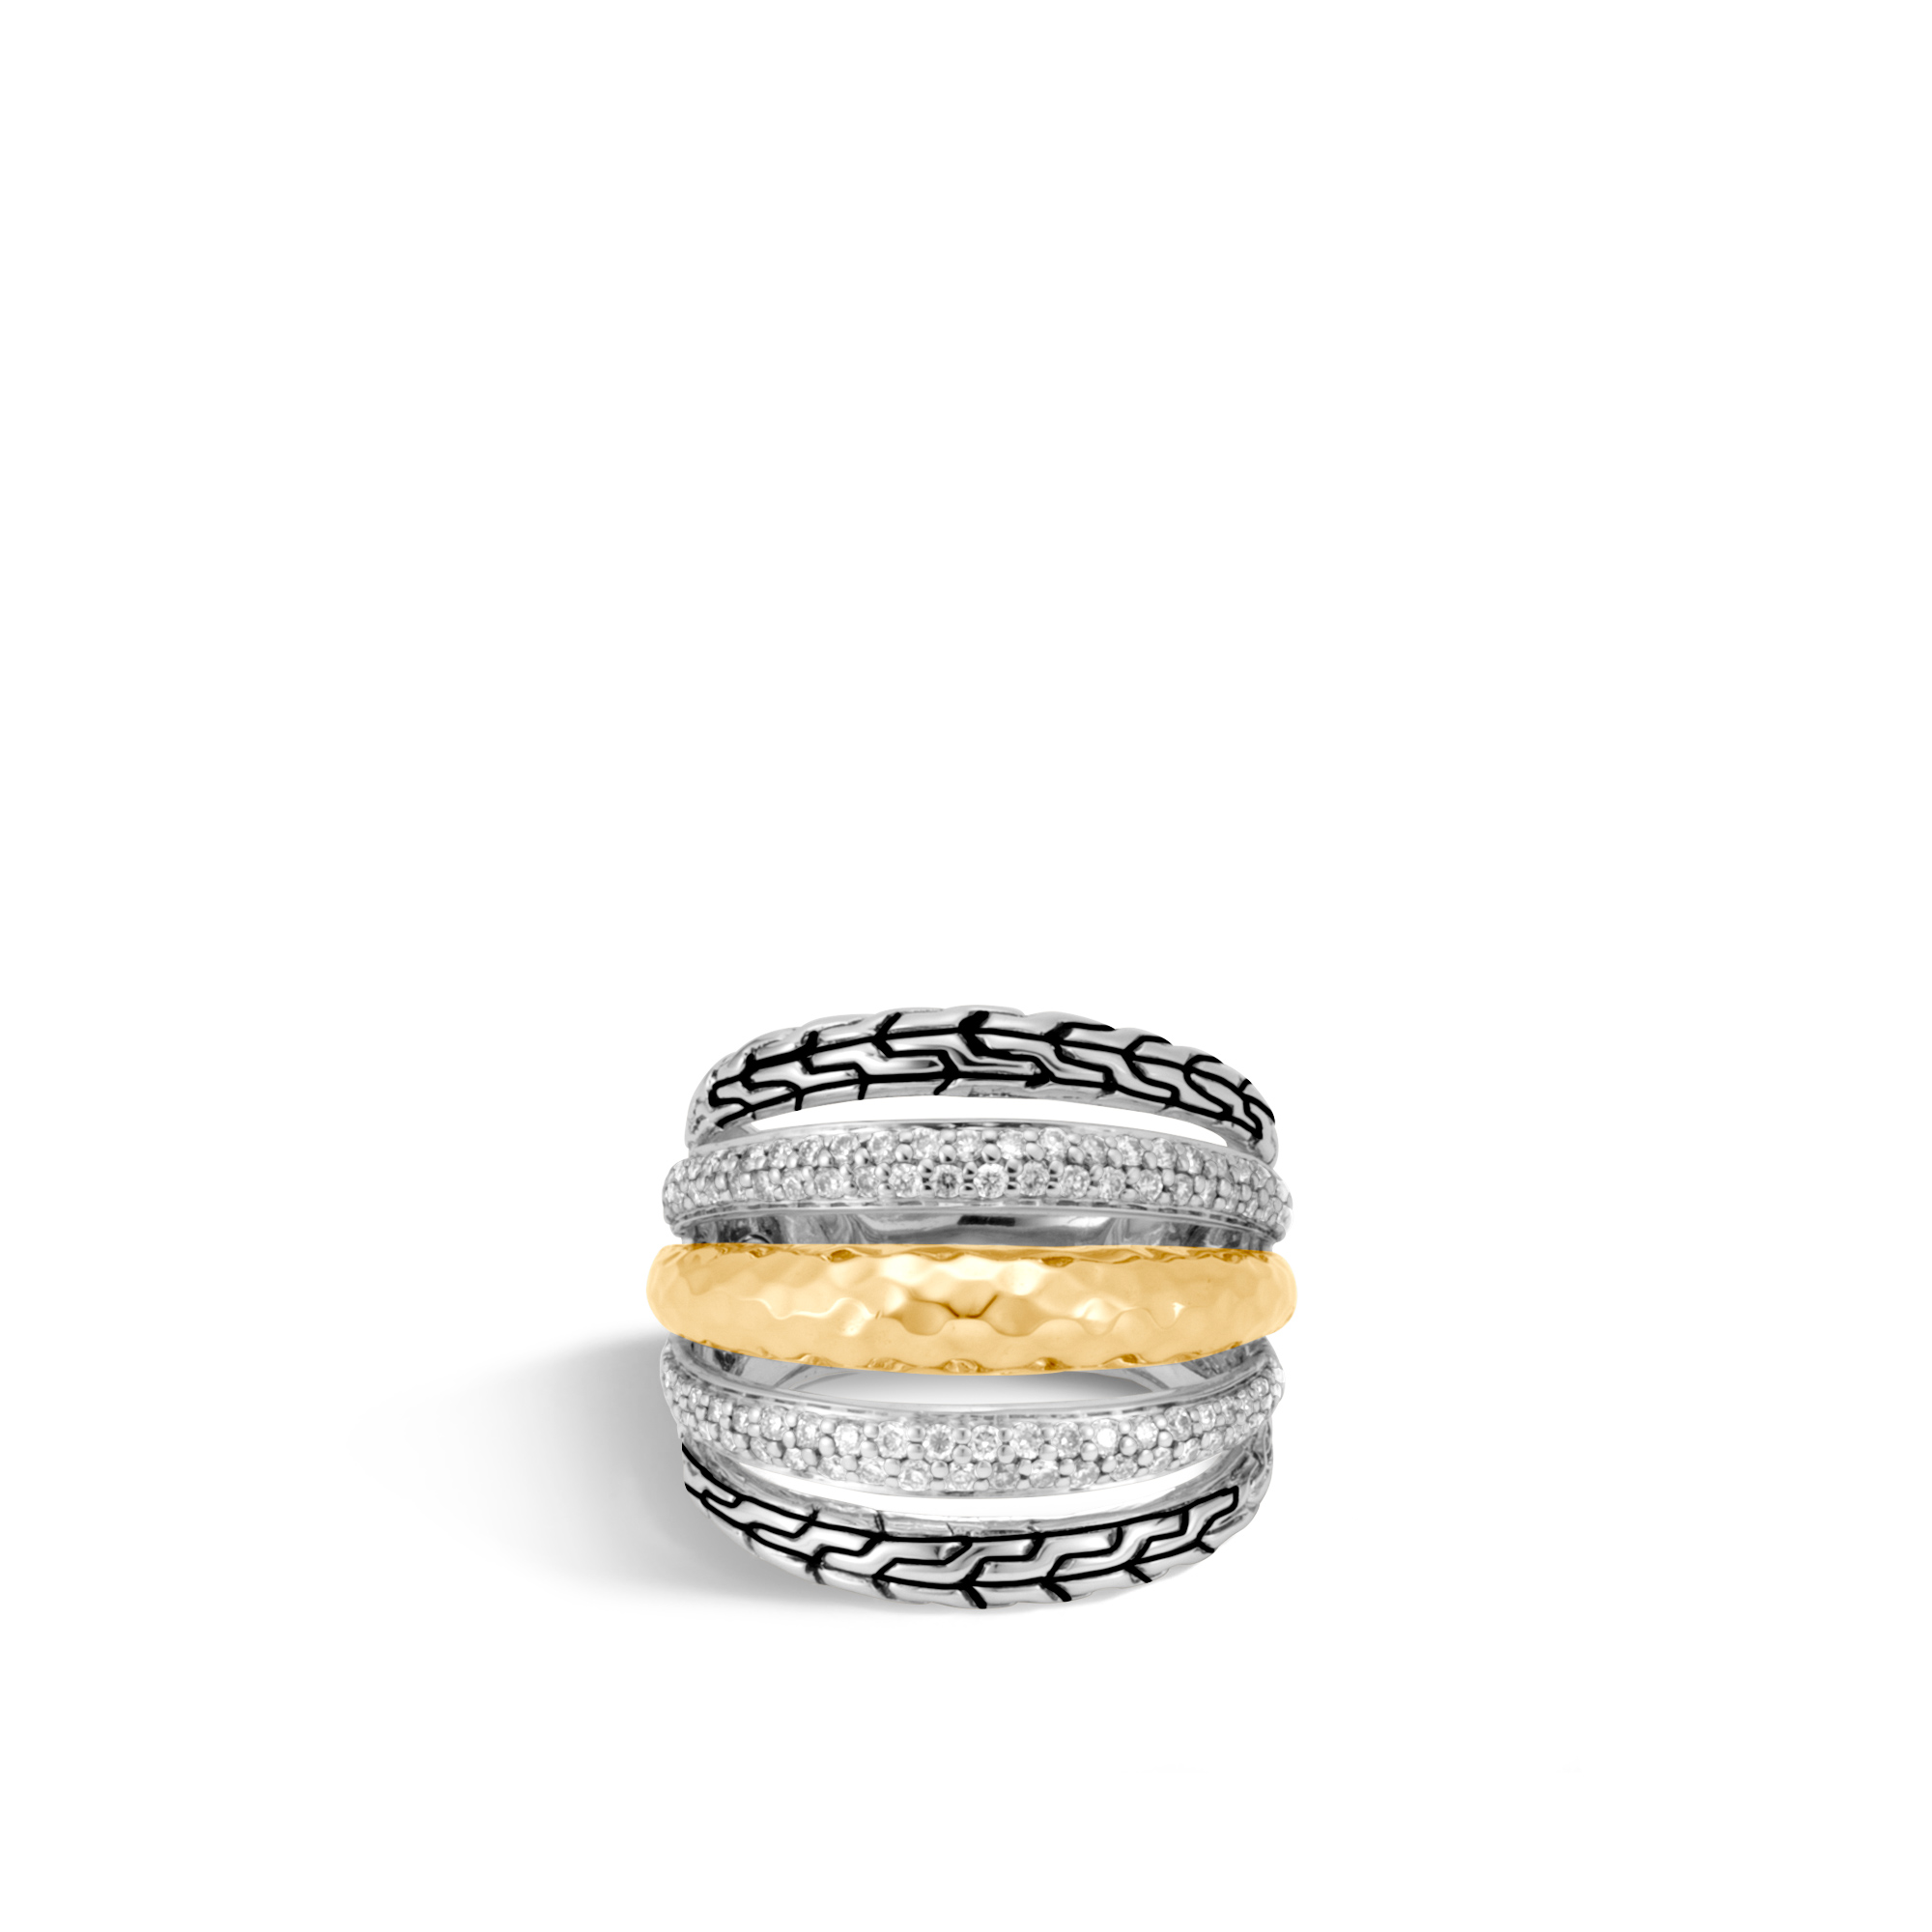 Classic Chain Ring in Silver, Hammered 18K Gold, Diamonds, White Diamond, large